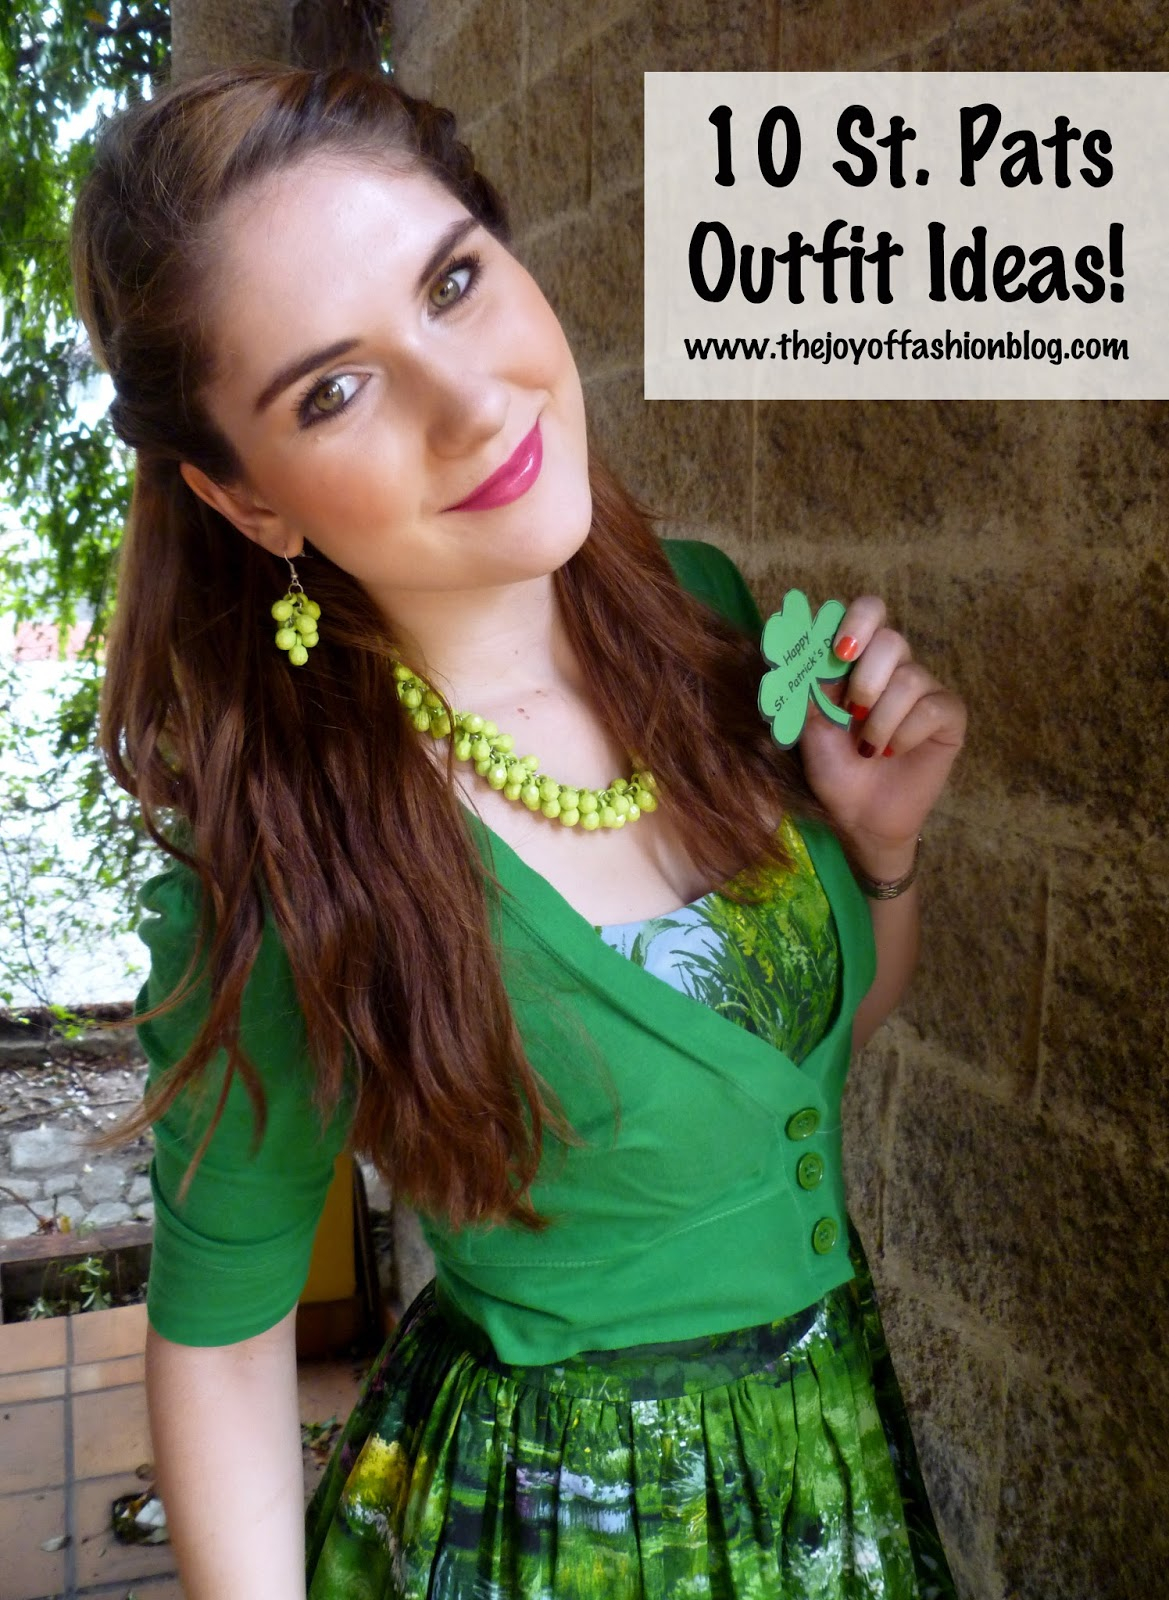 fashion blog, st. patricks day outfit, green outfit, st. patricks, san patricio, fashion tips, holiday outfit ideas